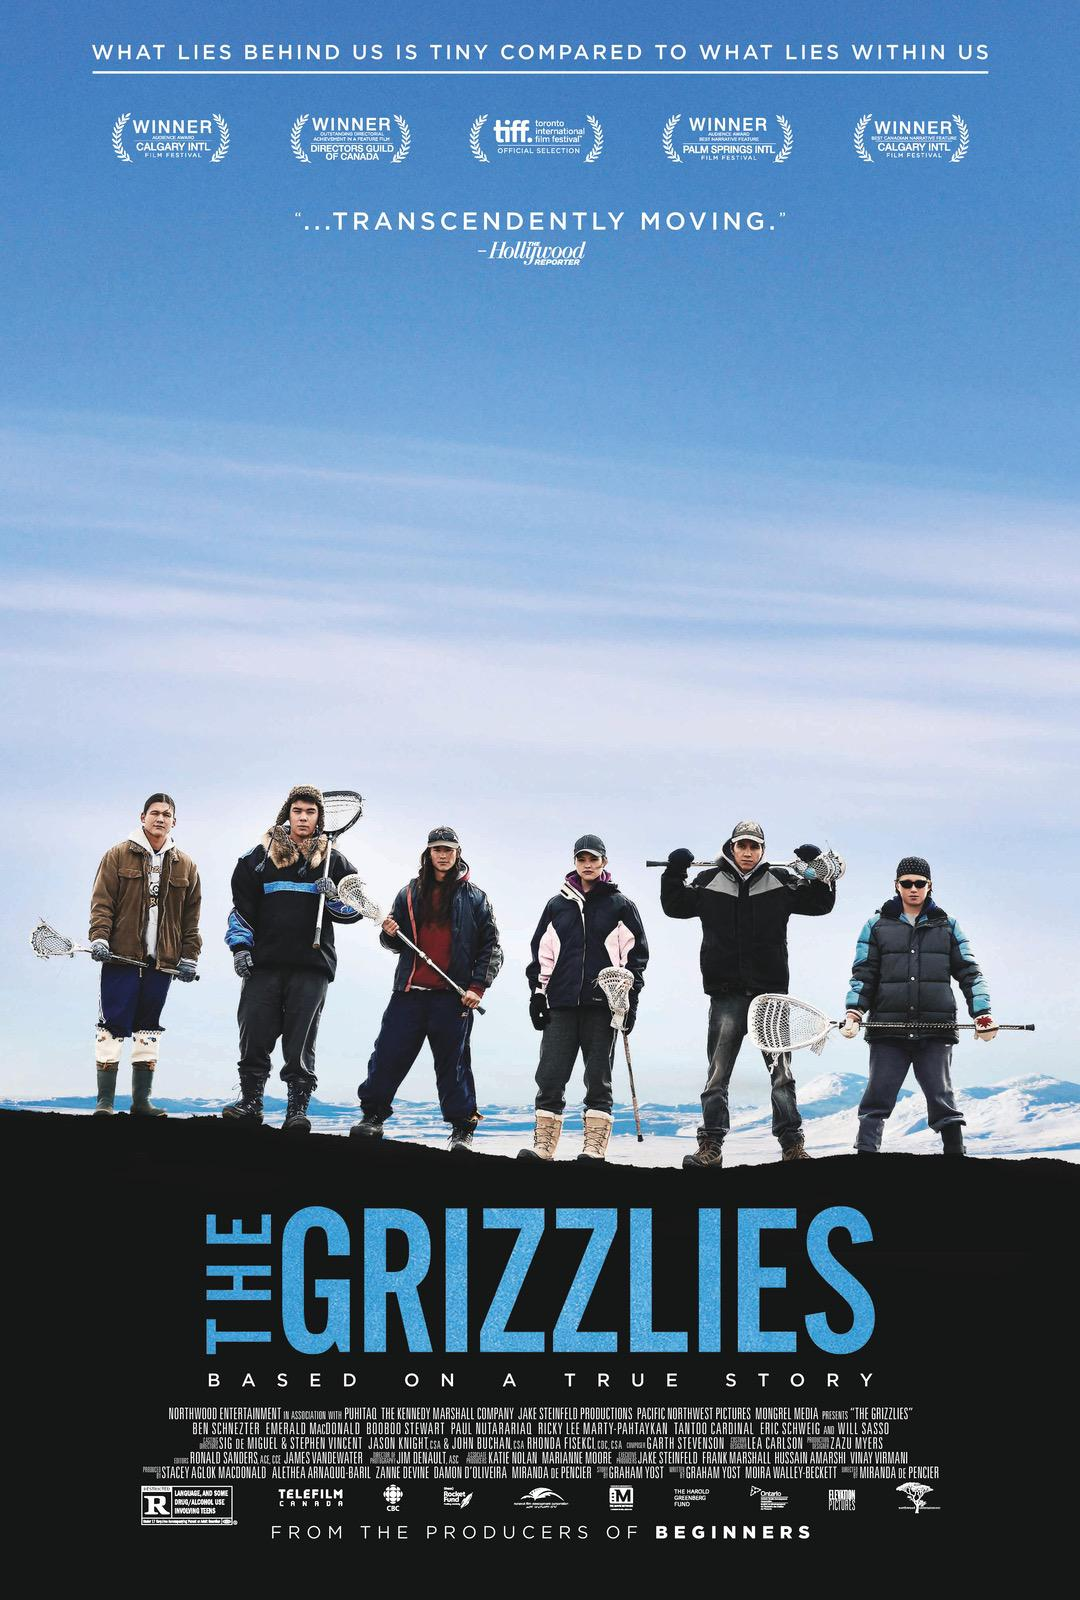 THE GRIZZLIES Movie